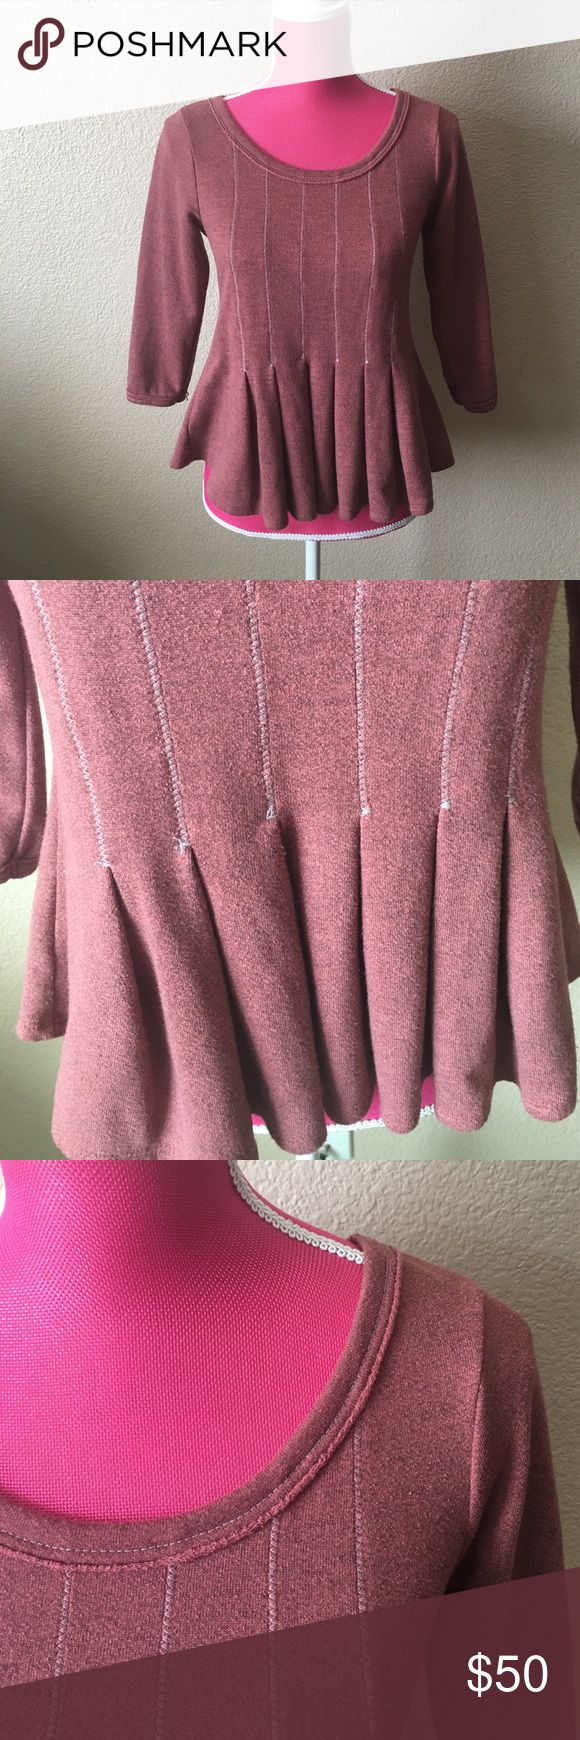 Anthropologie Saturday/Sunday Red Peplum Top Adorable top with some great details. Burnt red. Feels like a soft but thin sweater. Does have some flaws but overall excellent condition. 3/4th sleeves. Round neck. Offers welcome through offer tab. No trades. 10221171701 Anthropologie Tops Sweatshirts & Hoodies